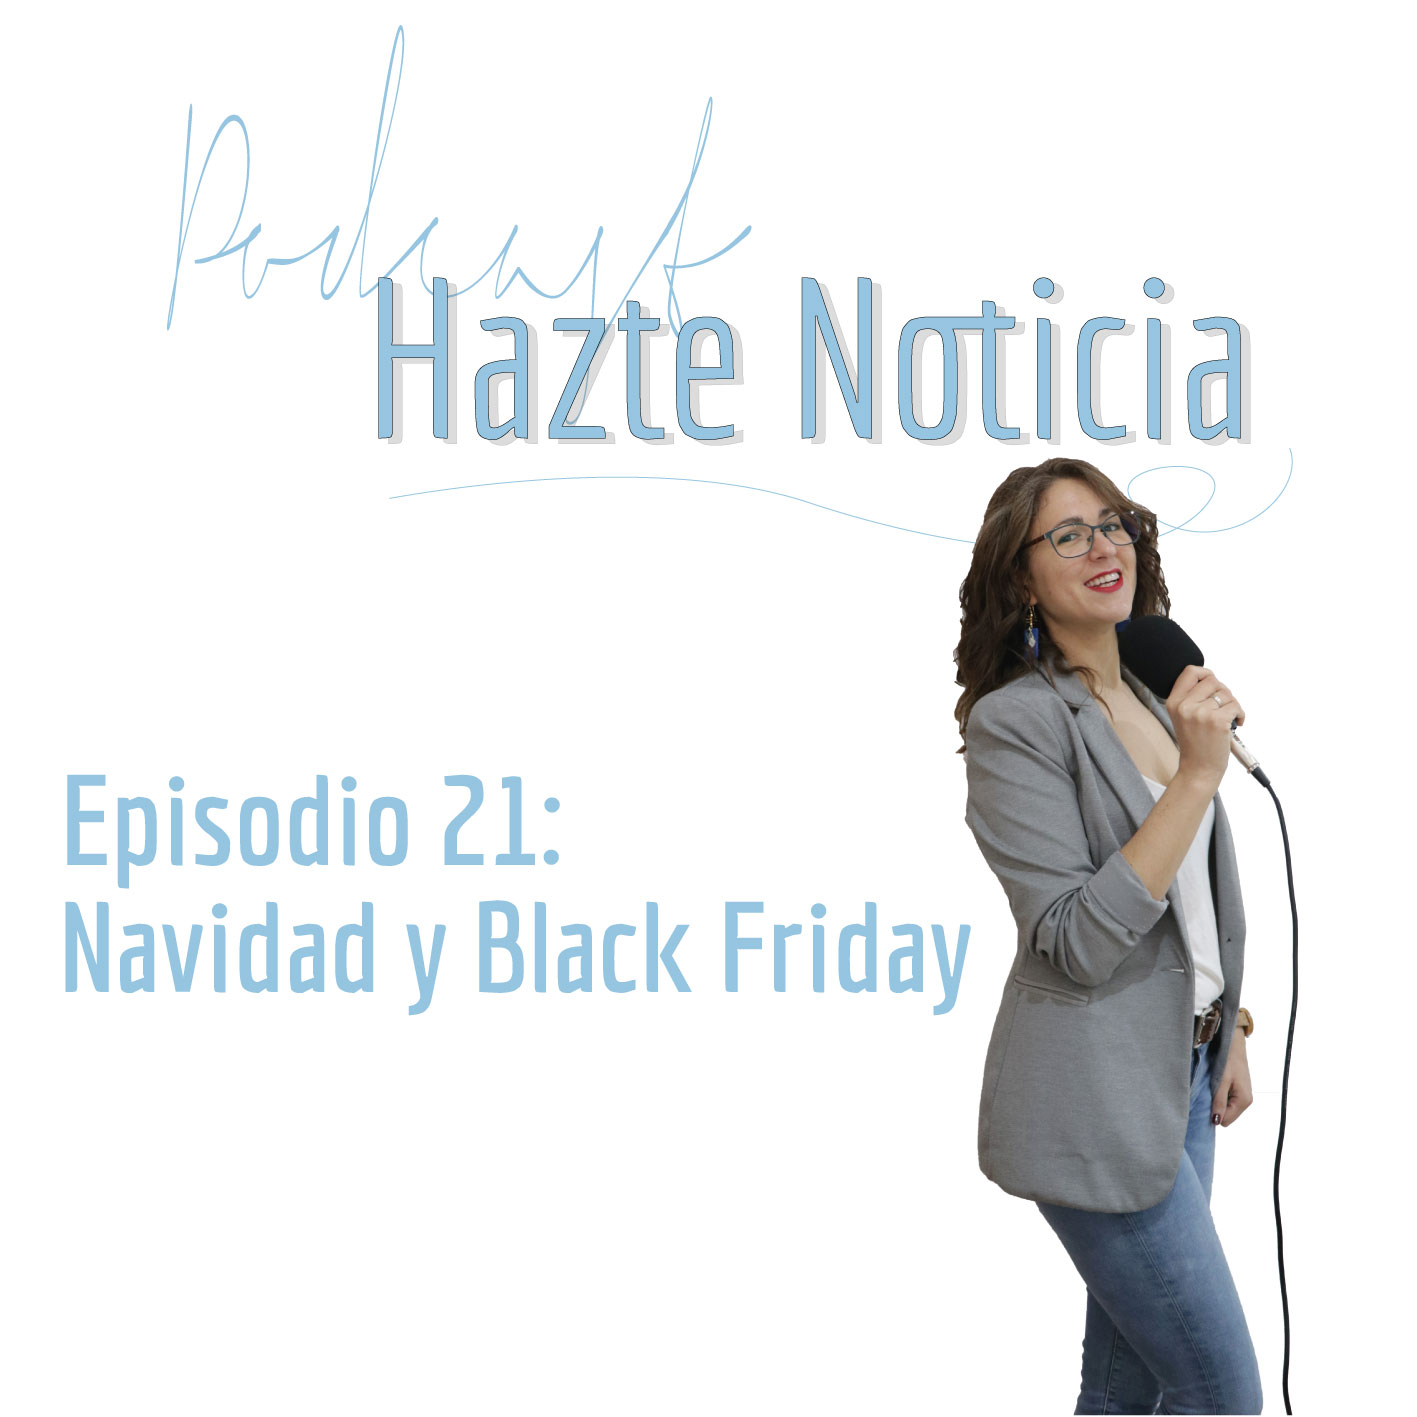 hazte noticia podcast